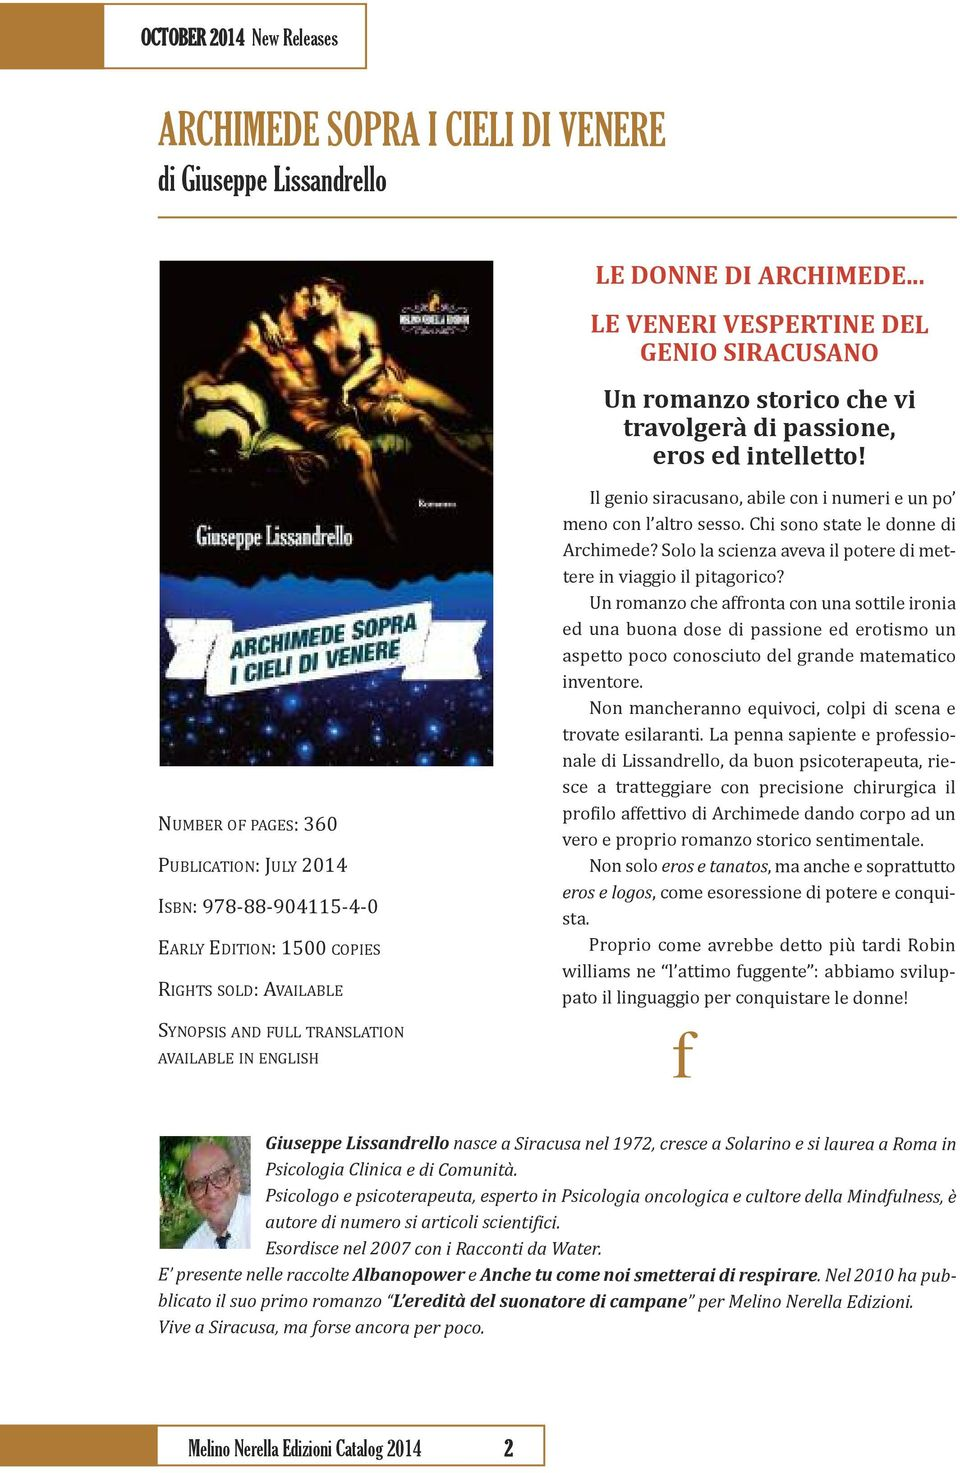 NUMBEr of PagES: 360 PUBLiCaTioN: JULY 2014 isbn: 978-88-904115-4-0 EarLY EDiTioN: 1500 CoPiES rights SoLD: available SYNoPSiS and FULL TraNSLaTioN available in ENgLiSH il genio siracusano, abile con